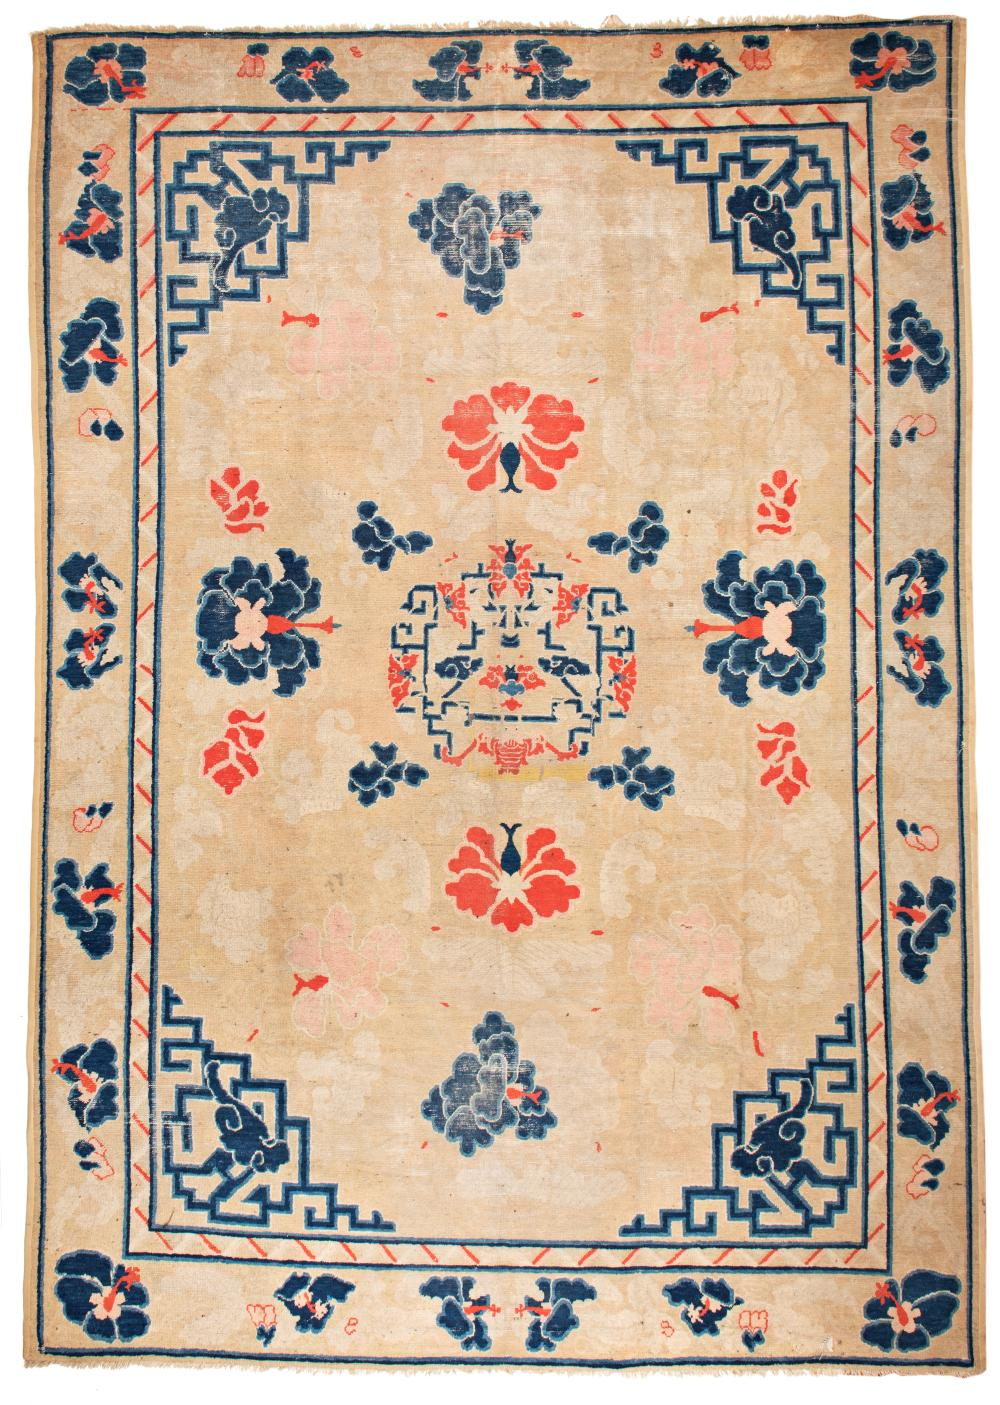 Ningxia Palace Carpet